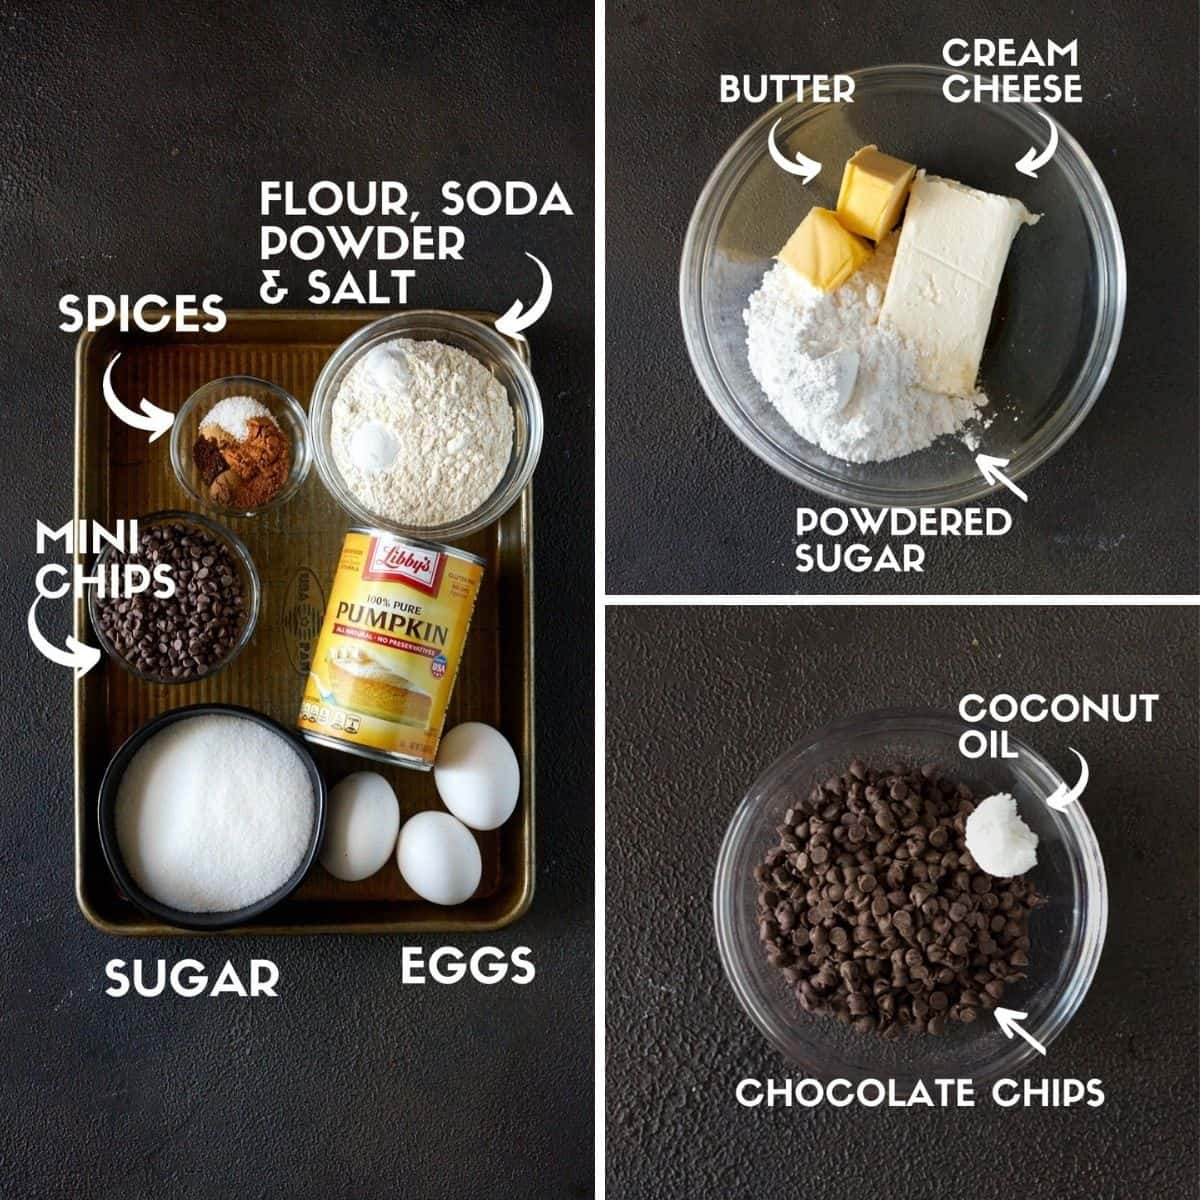 Ingredients for swiss roll cake including pumpkin, chocolate chips, sugar & butter.